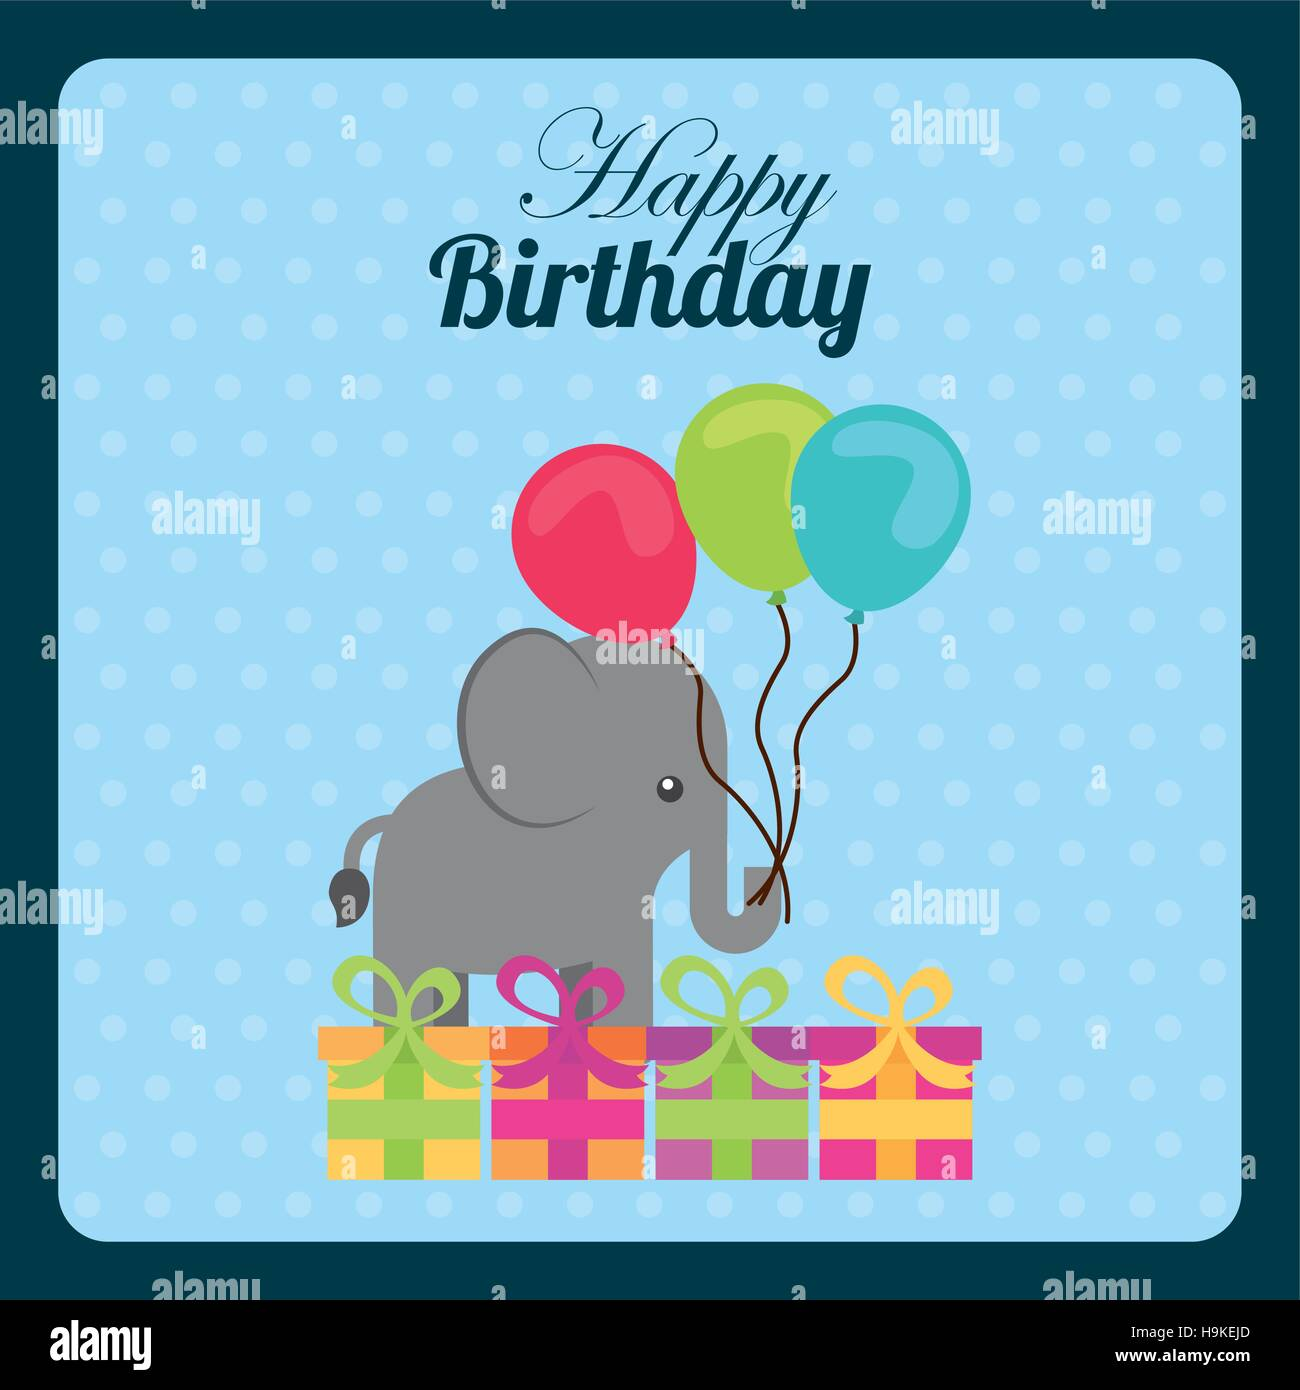 Happy birthday card with cute elephant with balloons and gift boxes happy birthday card with cute elephant with balloons and gift boxes over blue background colorful design vector illustration bookmarktalkfo Choice Image